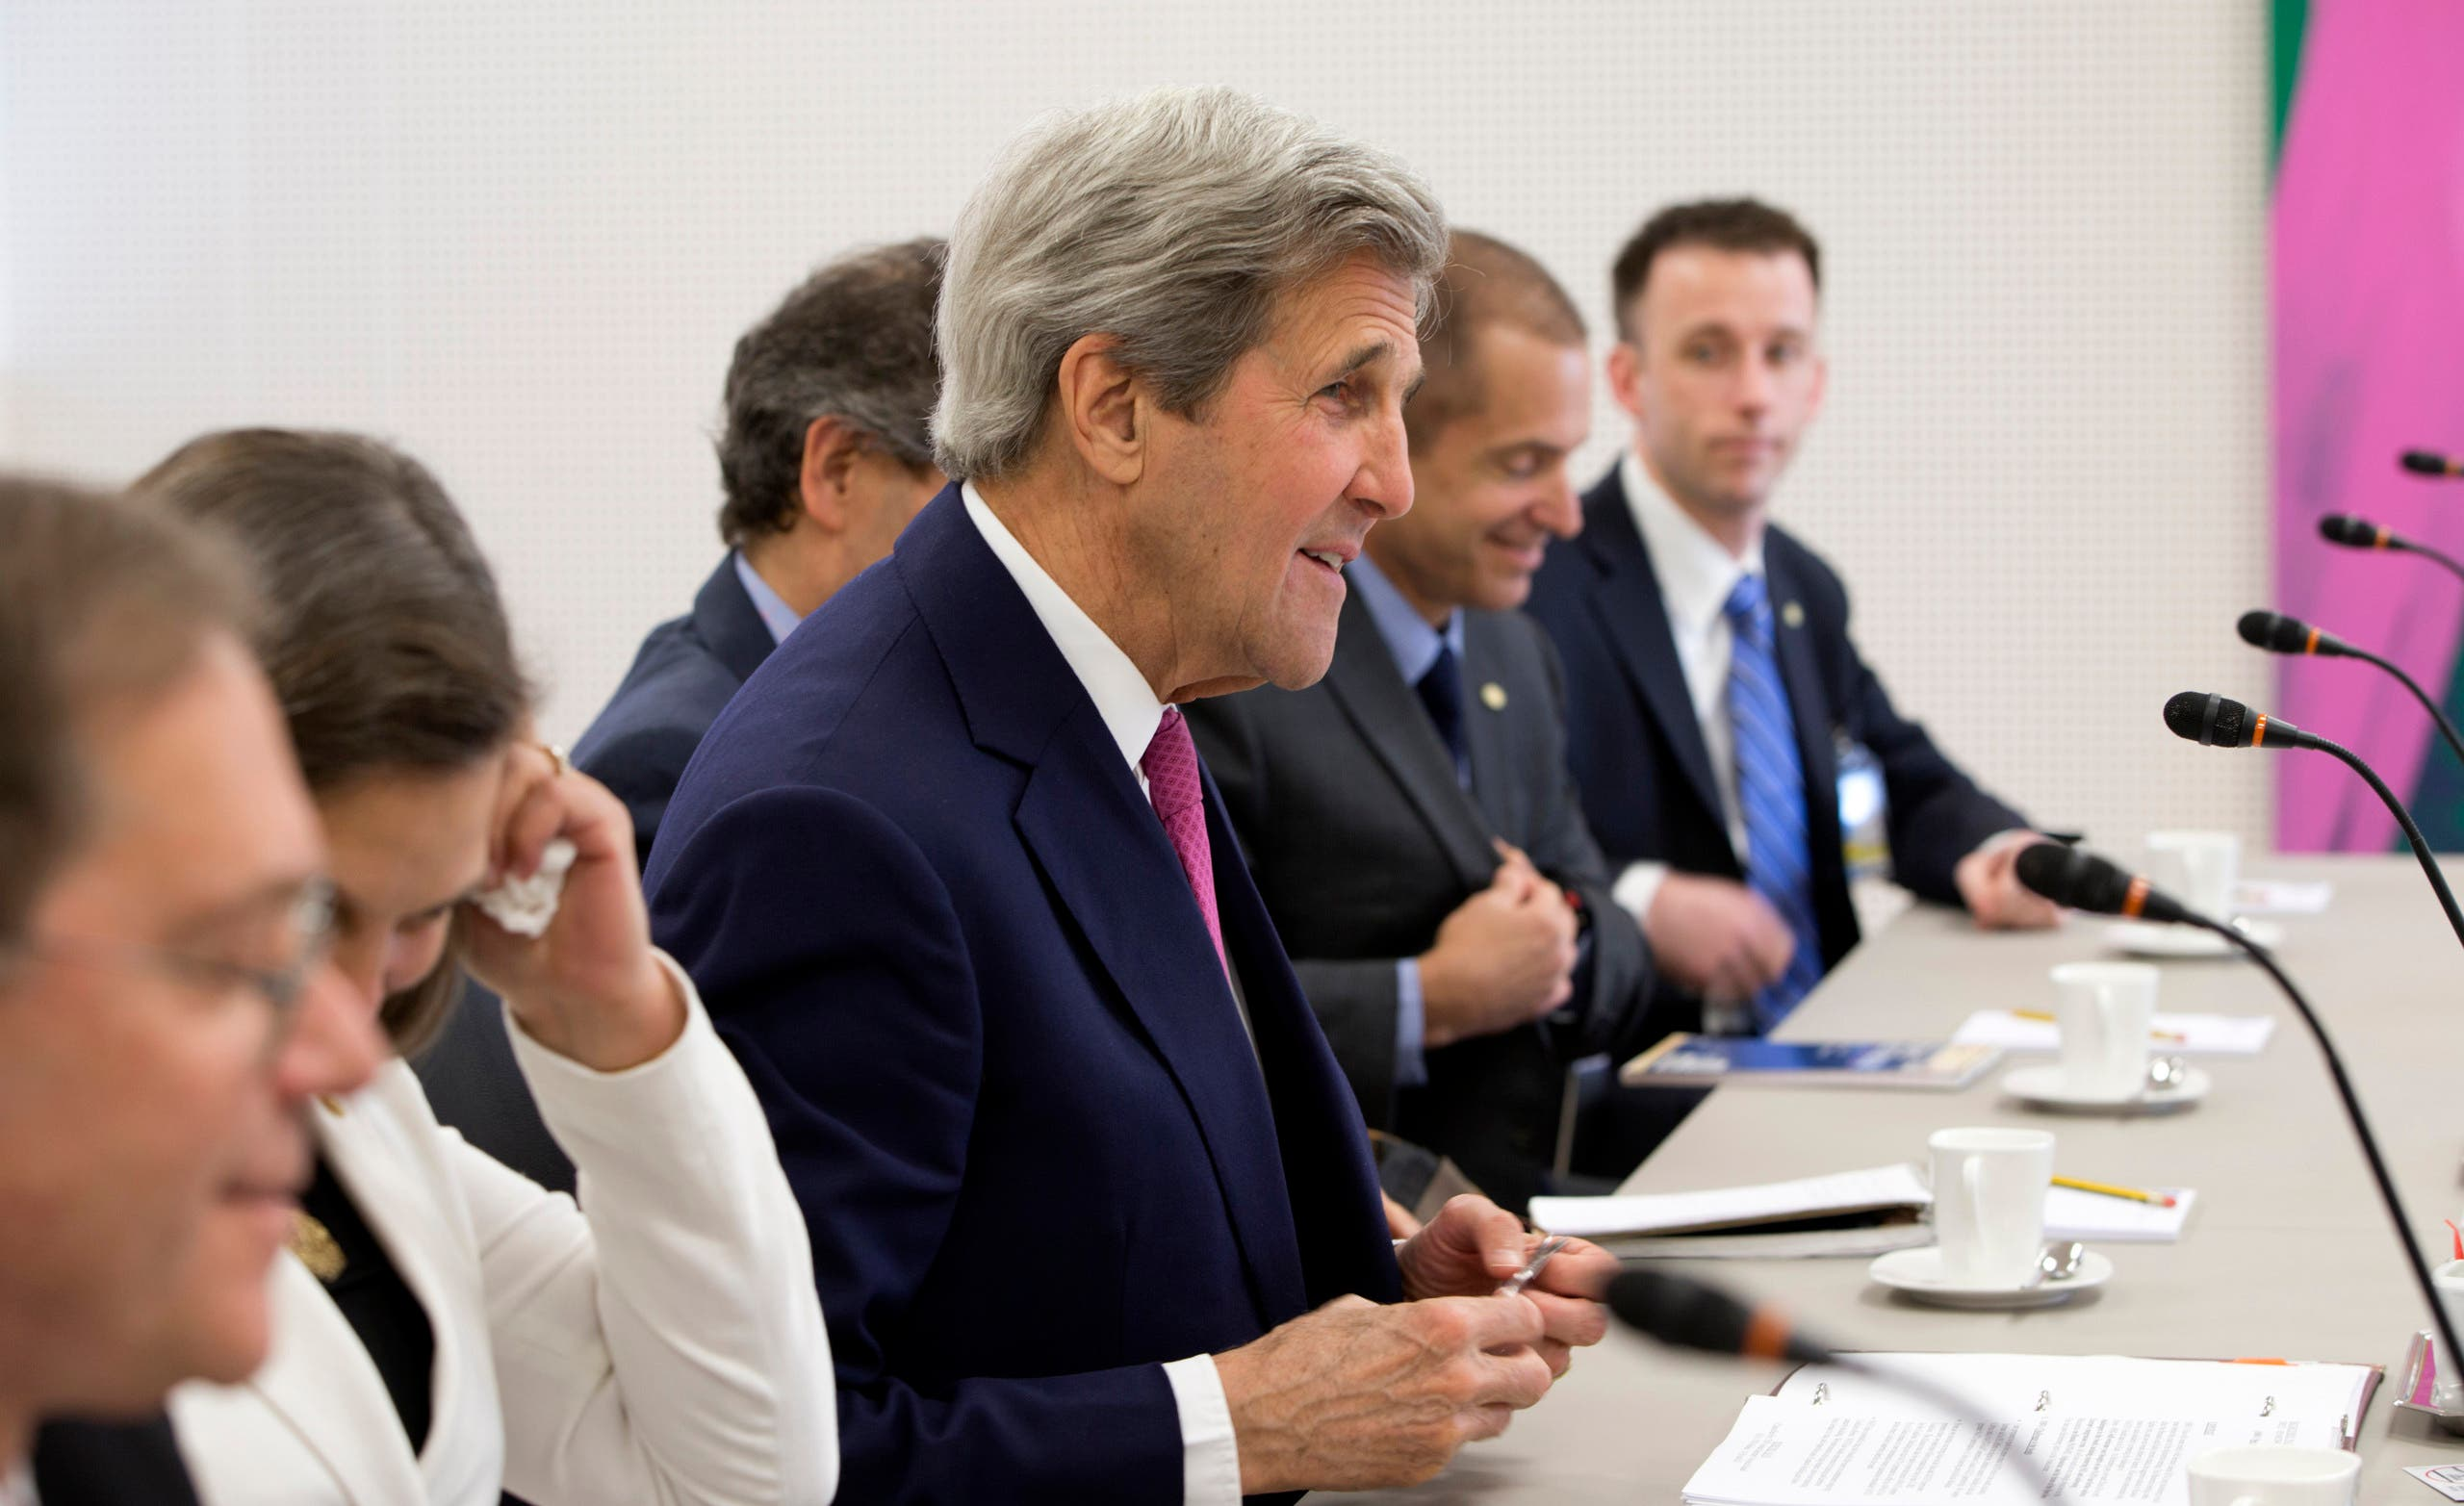 John Kerry, foreign ministers of Britain, France and Germany and EU foreign policy chief, said that Iran deserves the sanctions relief it's due under last year's landmark nuclear deal. (AP)